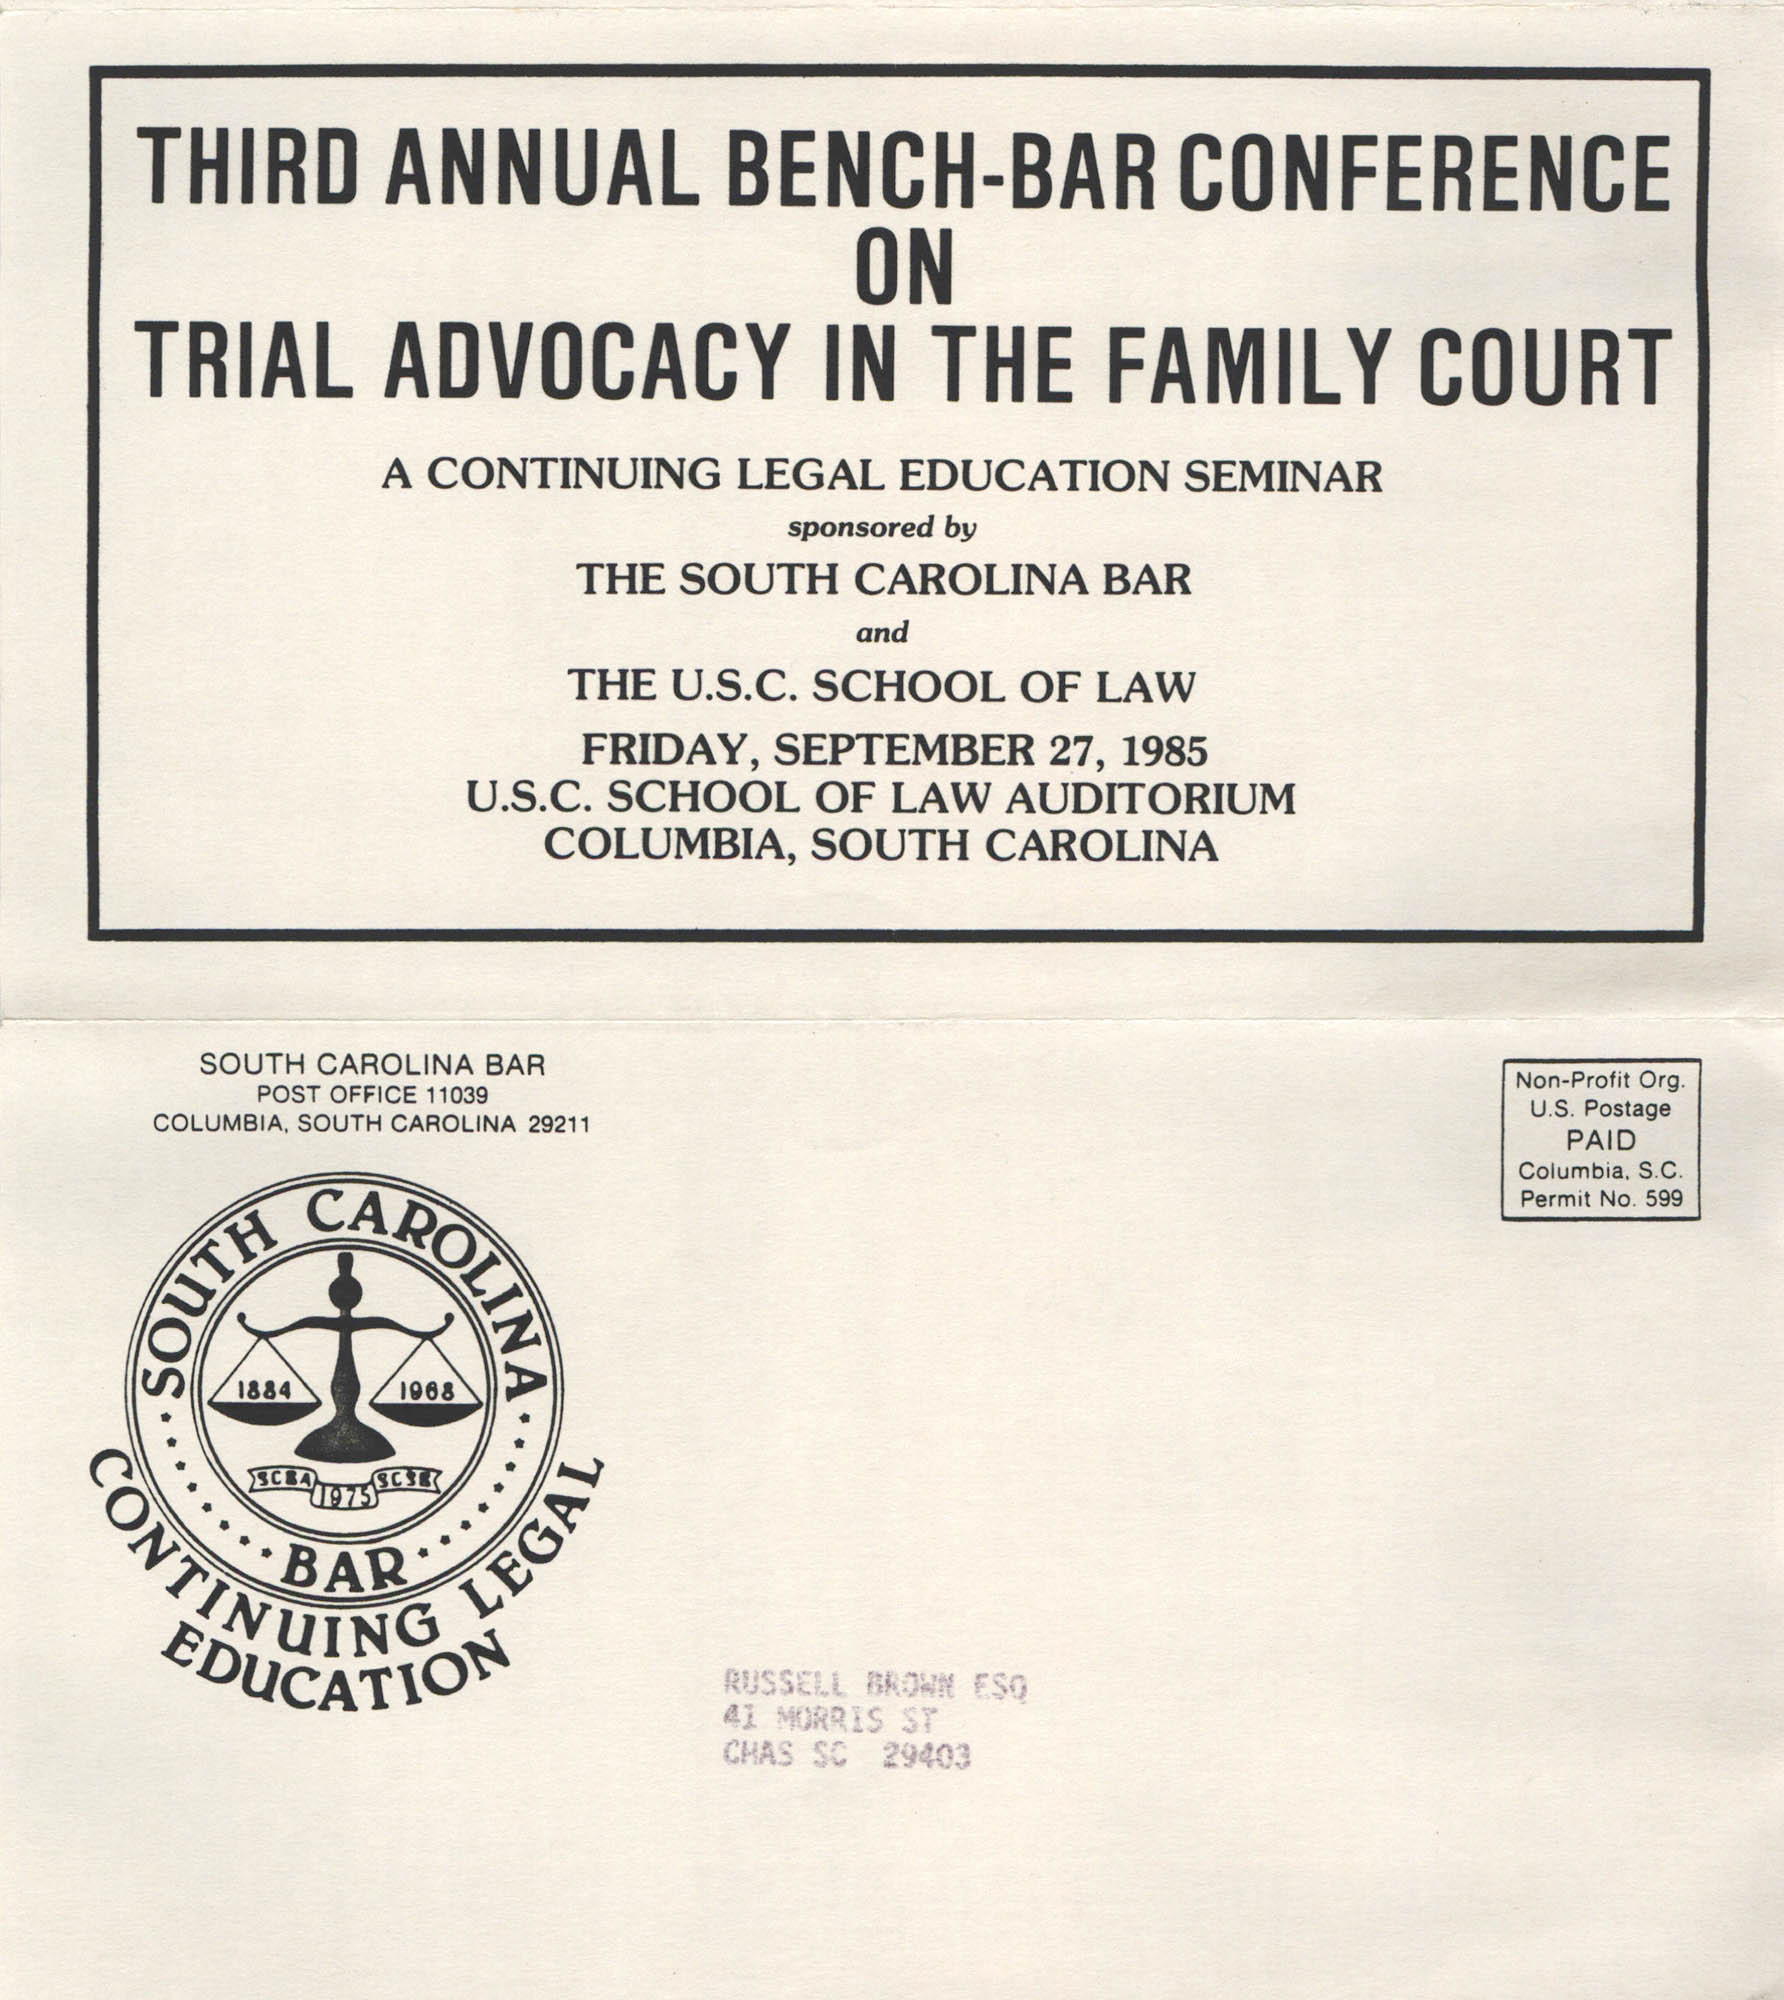 Third Annual Bench-Bar Conference on Trial Advocacy in the Family Court, Continuing Legal Education Pamphlet, September 27, 1985, Russell Brown